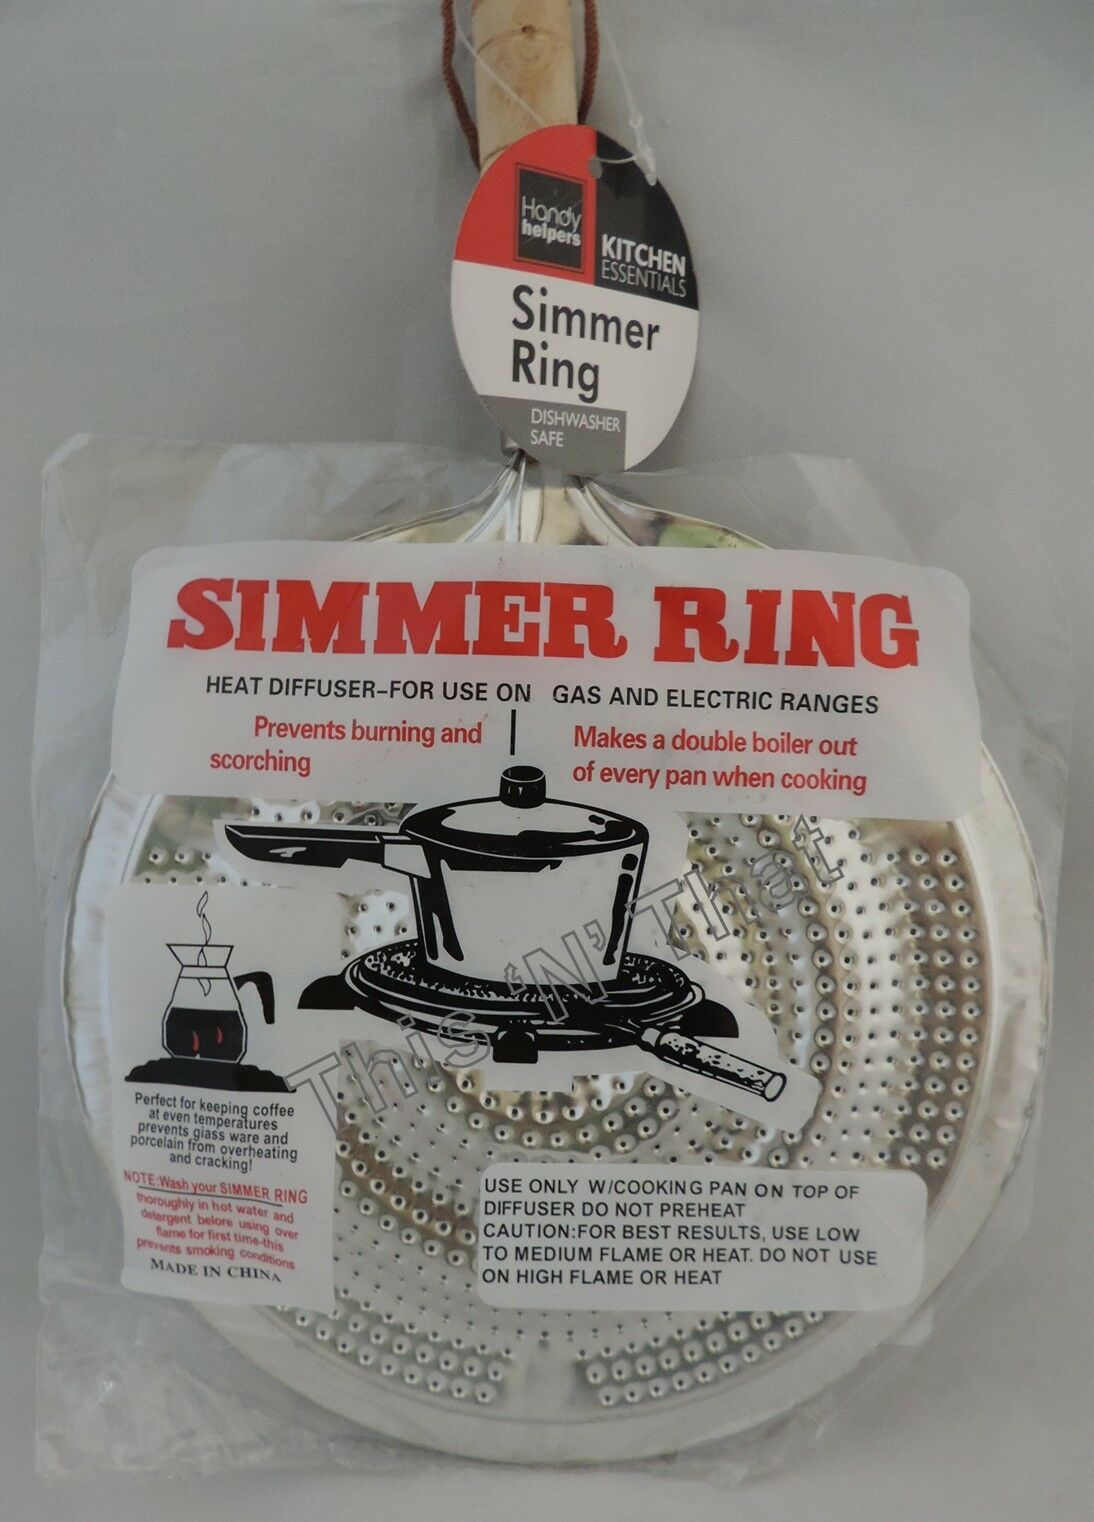 Stove top Metal Simmer Ring Heat Diffuser for Use on Gas and